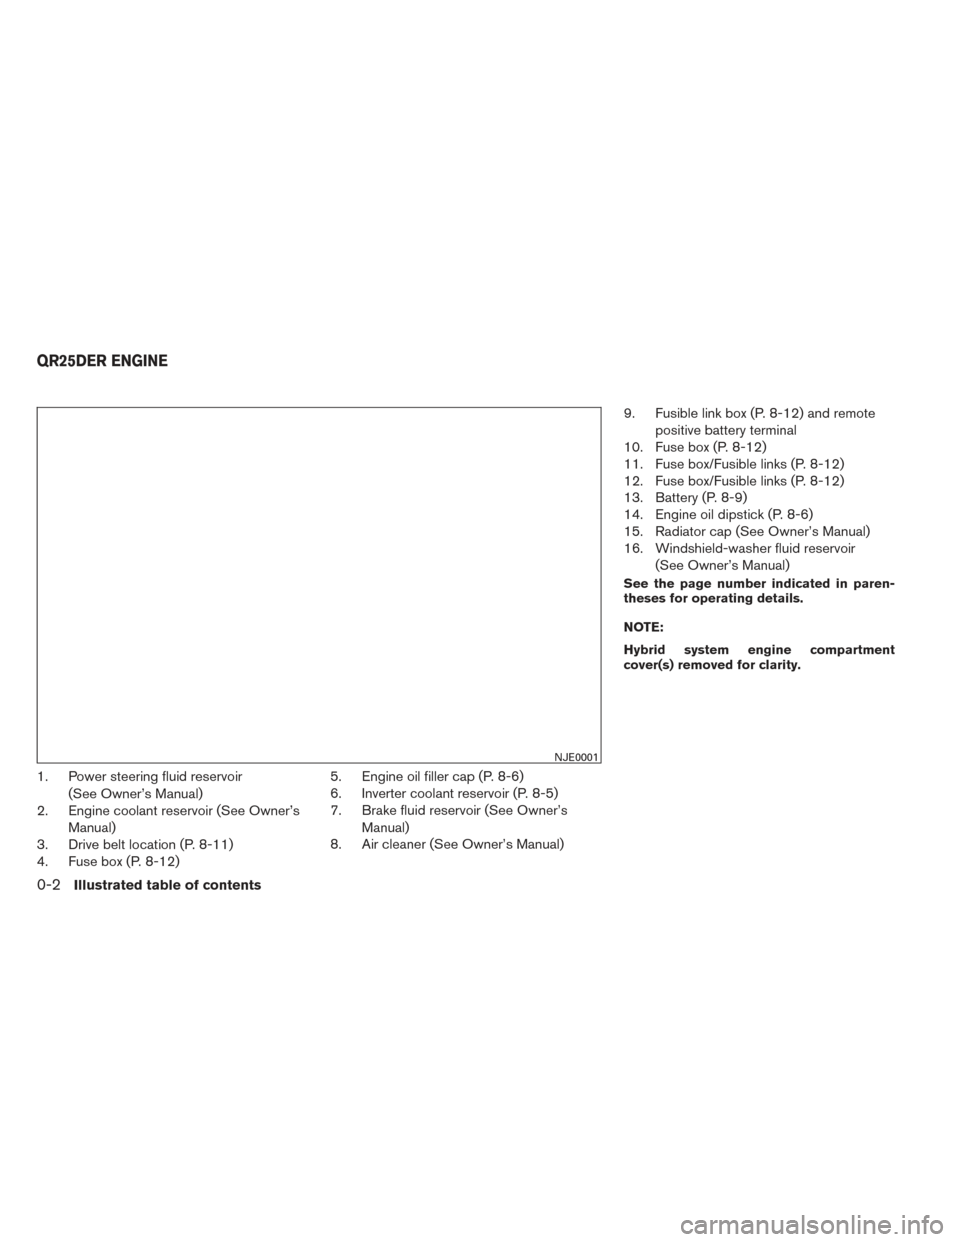 NISSAN PATHFINDER HYBRID 2014 R52 / 4.G Owners Manual, Page 23